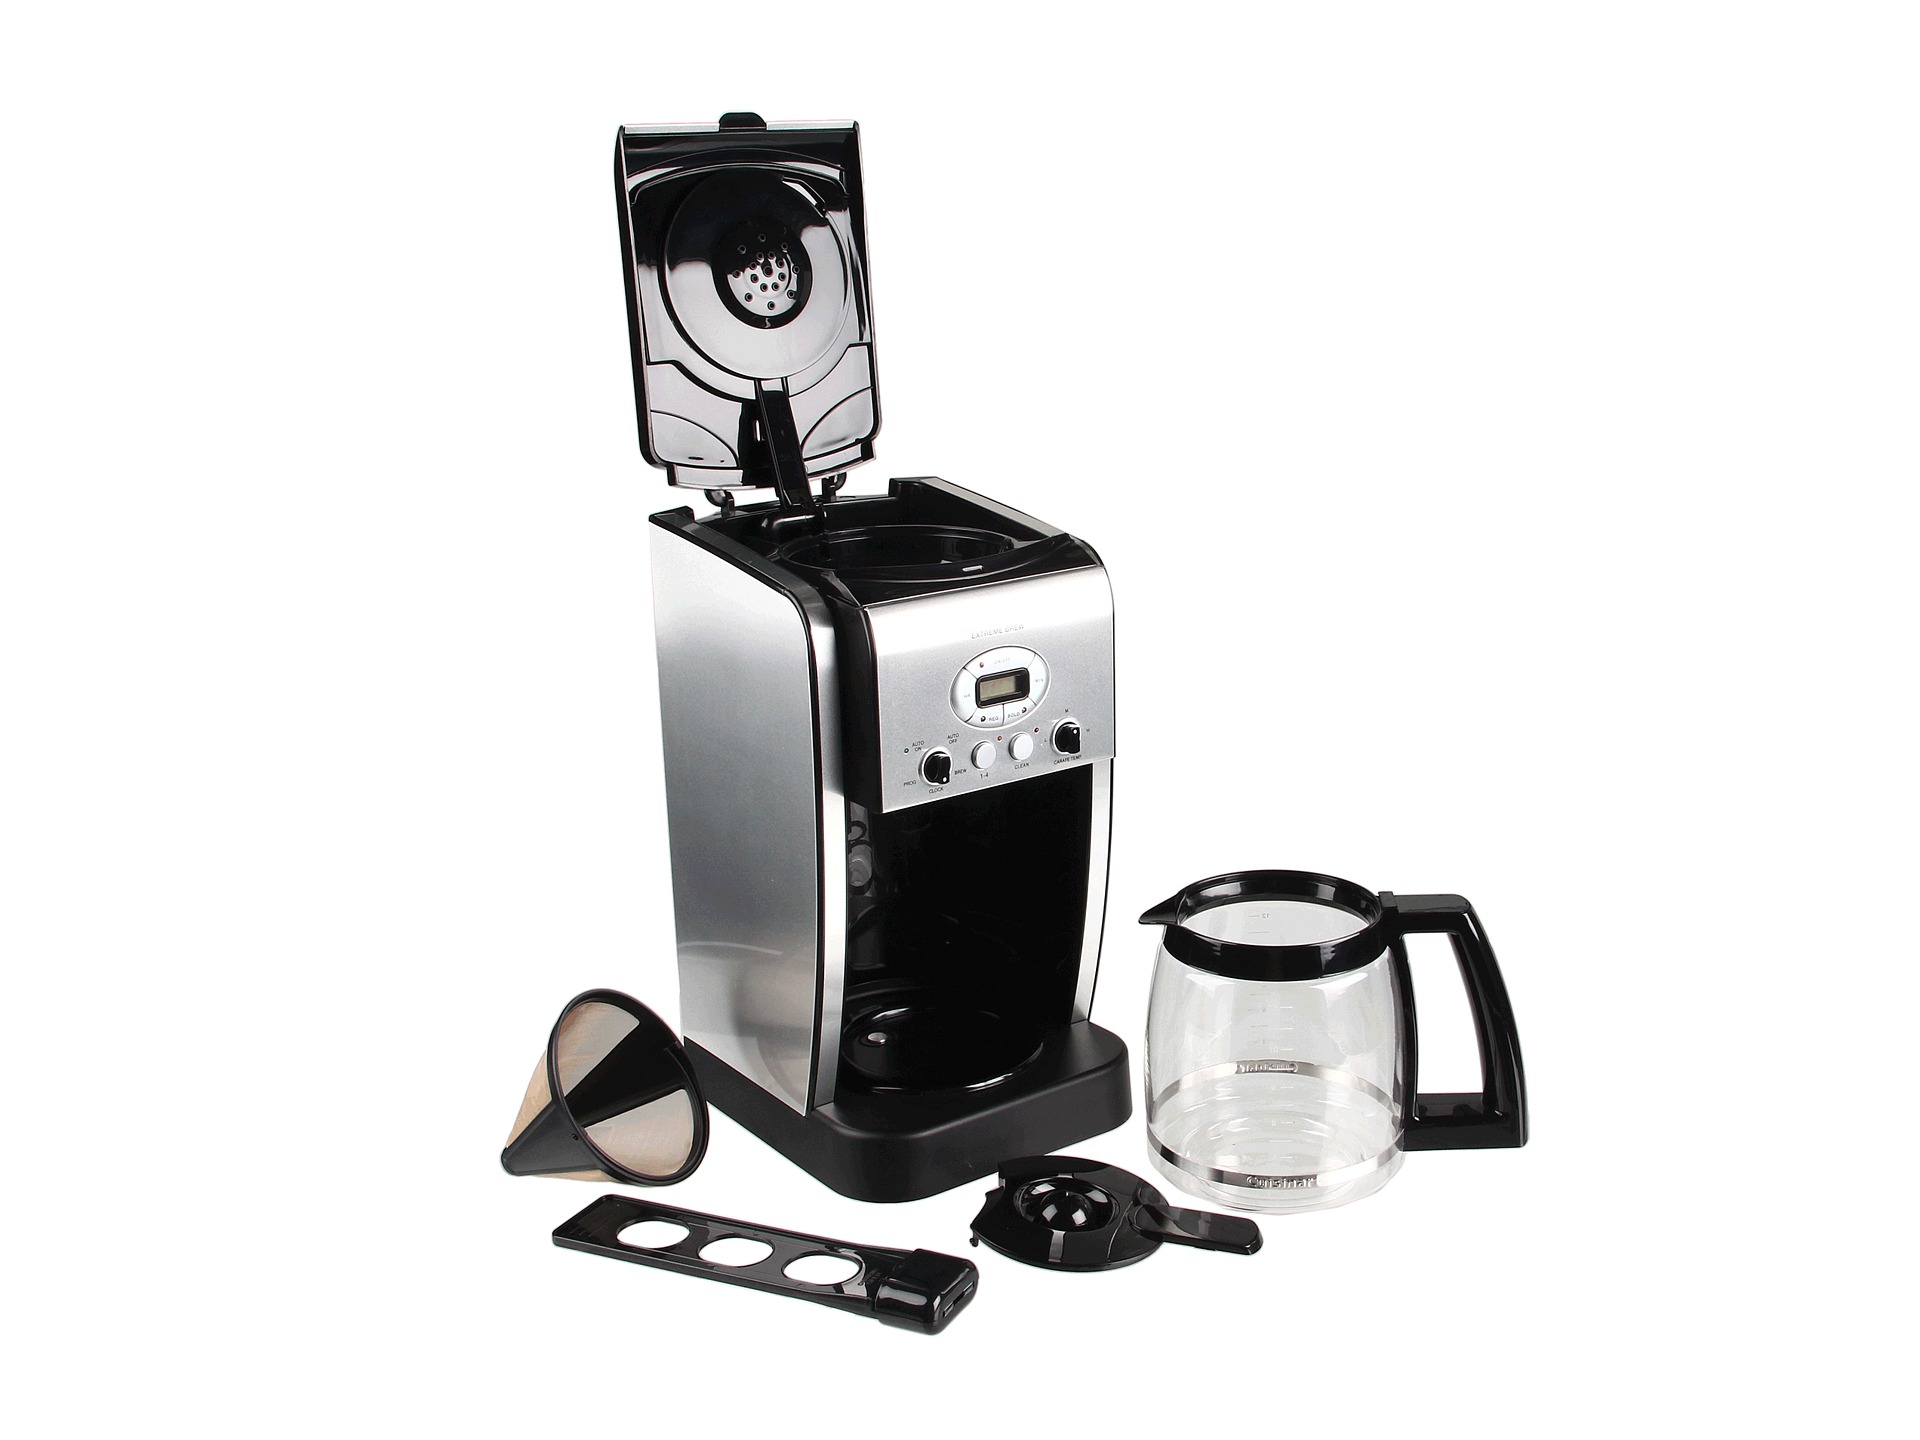 Cuisinart Coffee Maker Dcc 2650 : Cuisinart Dcc 2650 Extreme Brew 12 Cup Programmable Coffee Maker Shipped Free at Zappos